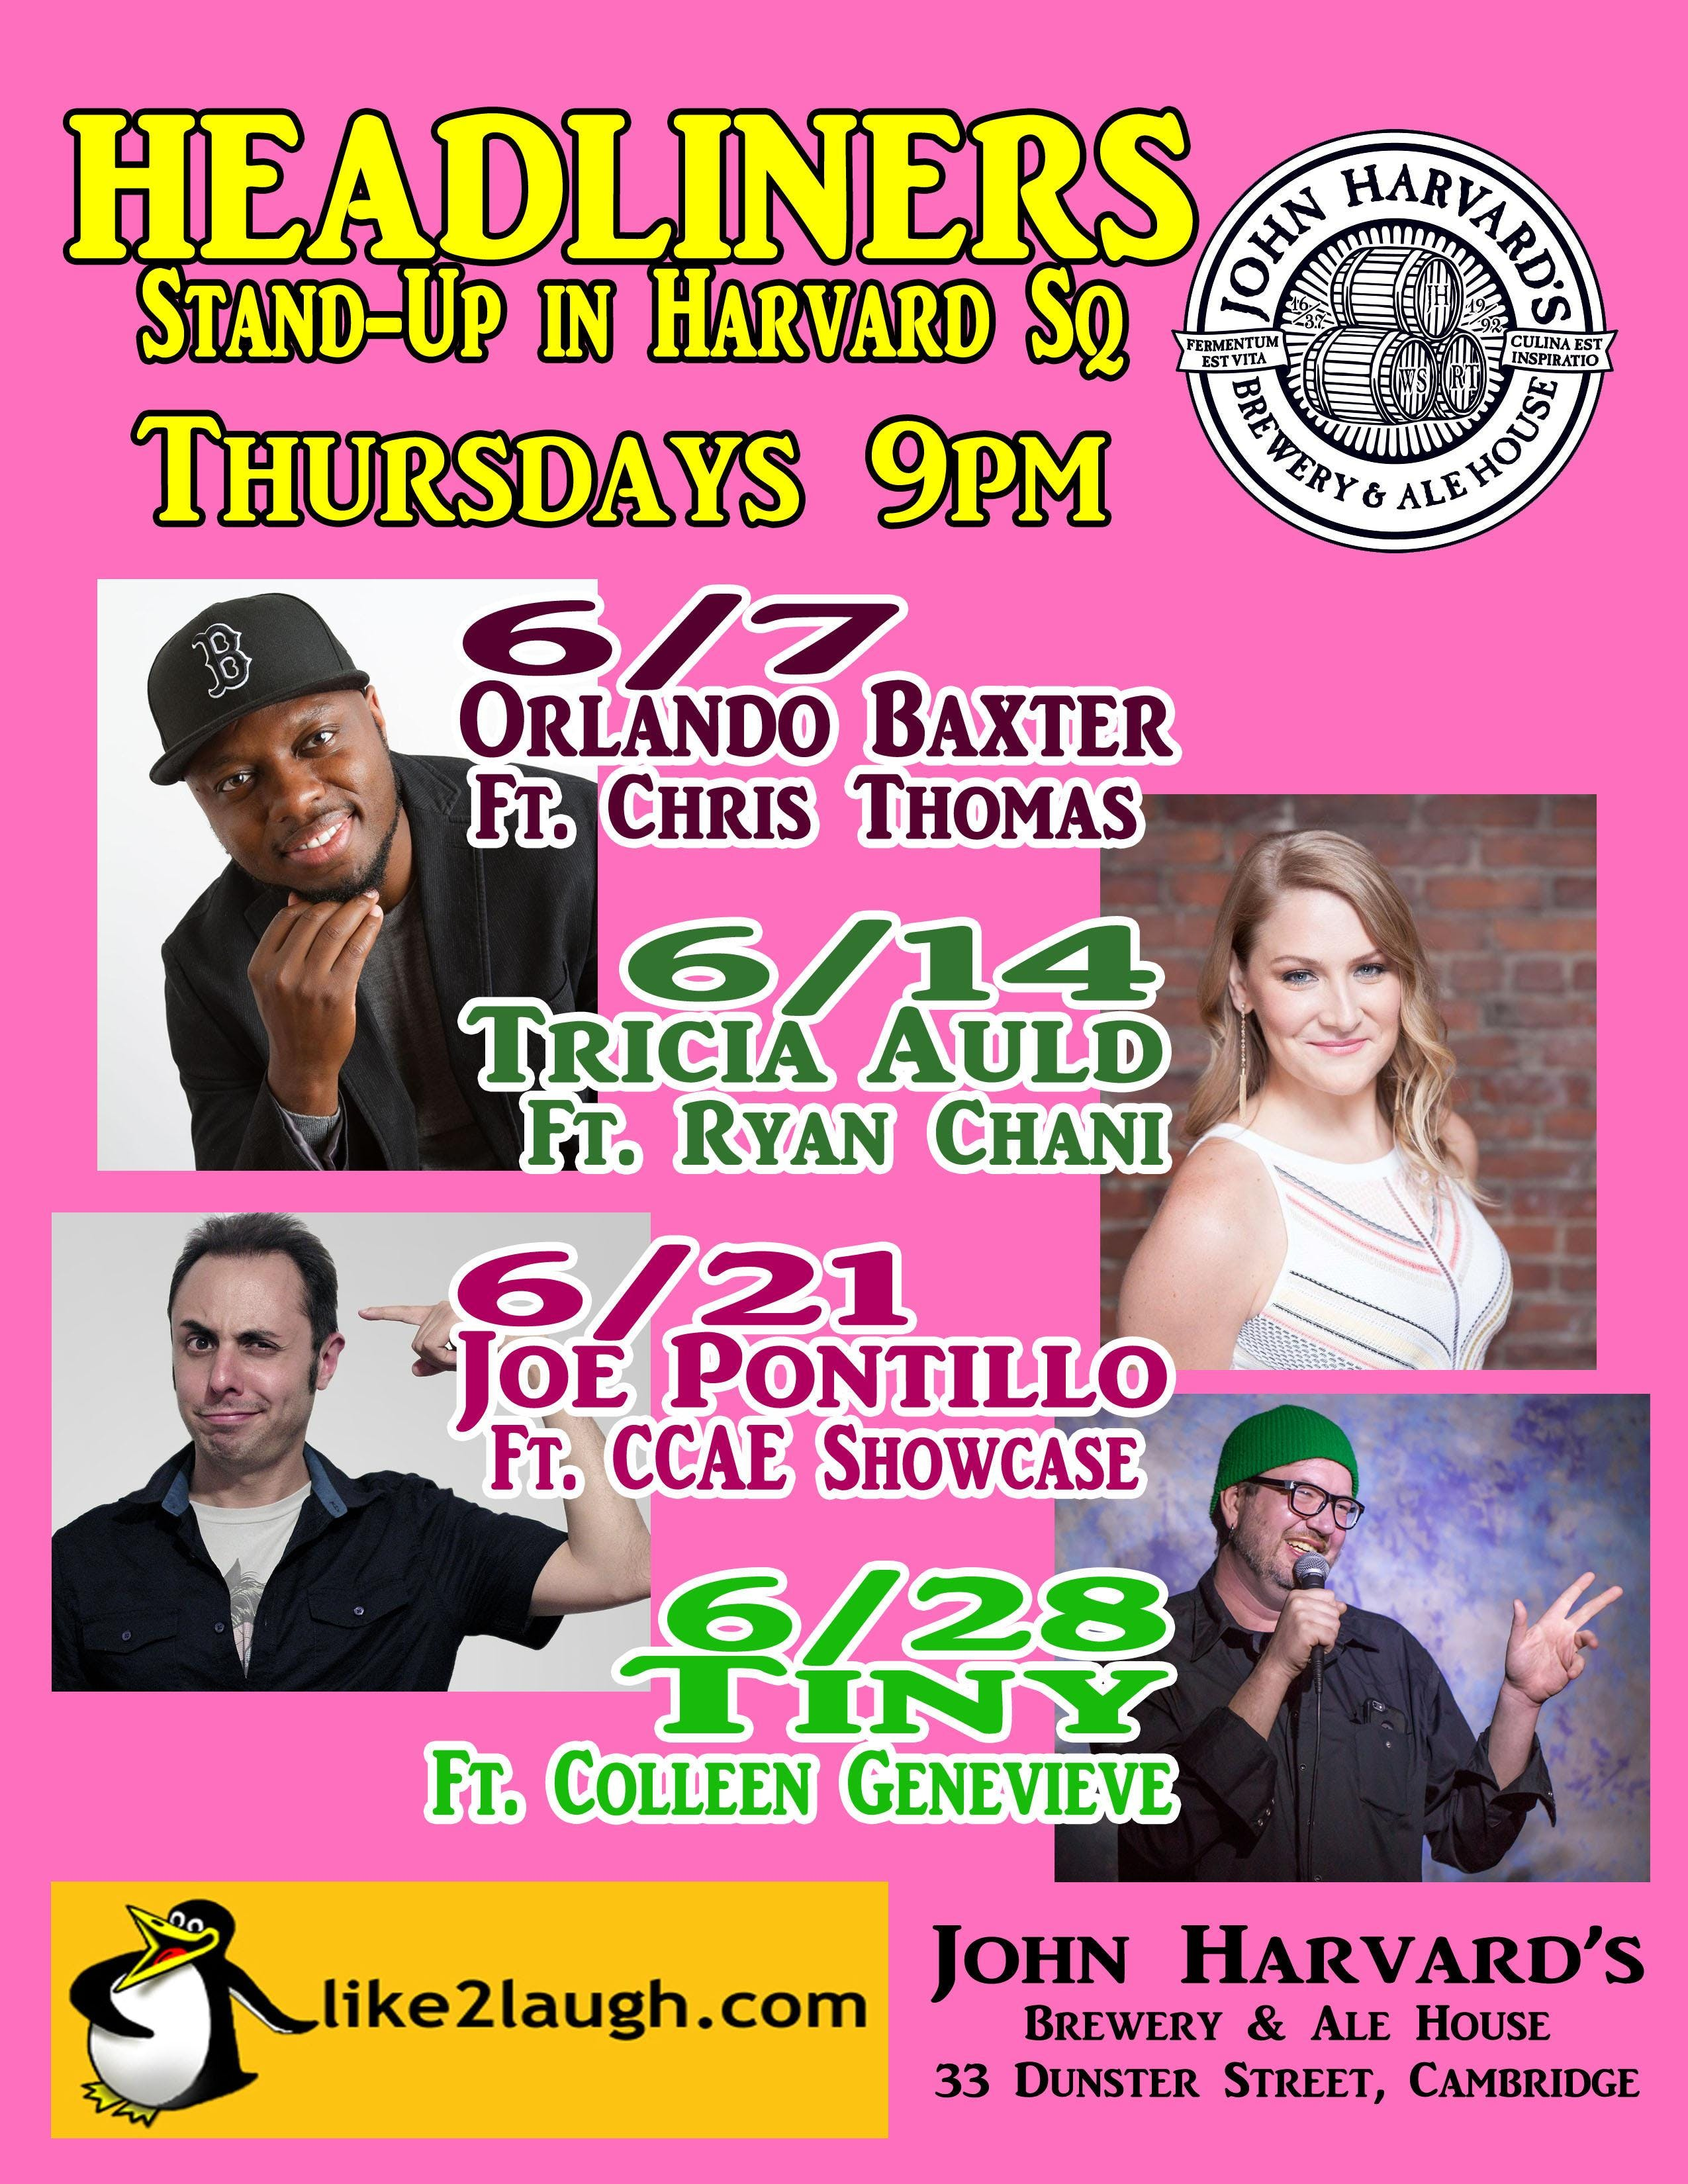 A1 Headliners Stand-Up in Harvard Square